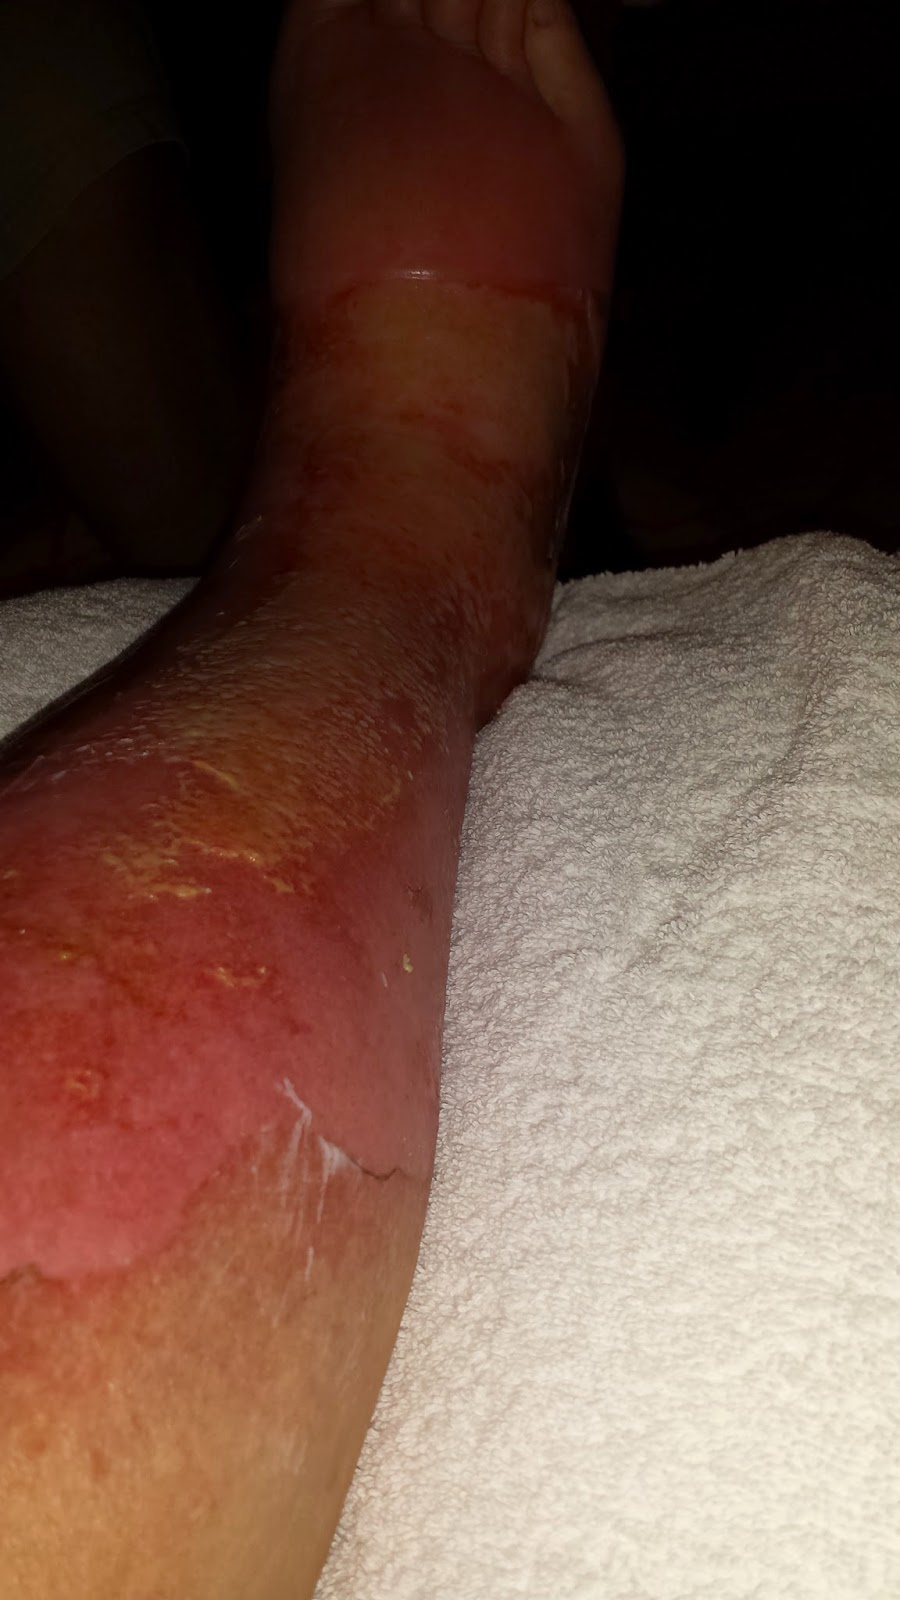 inflammation and full thickness burn Prolonged and excessive inflammatory response is a major cause of  hypertrophic scar formation  excessive scar formation after partial and full- thickness burn.